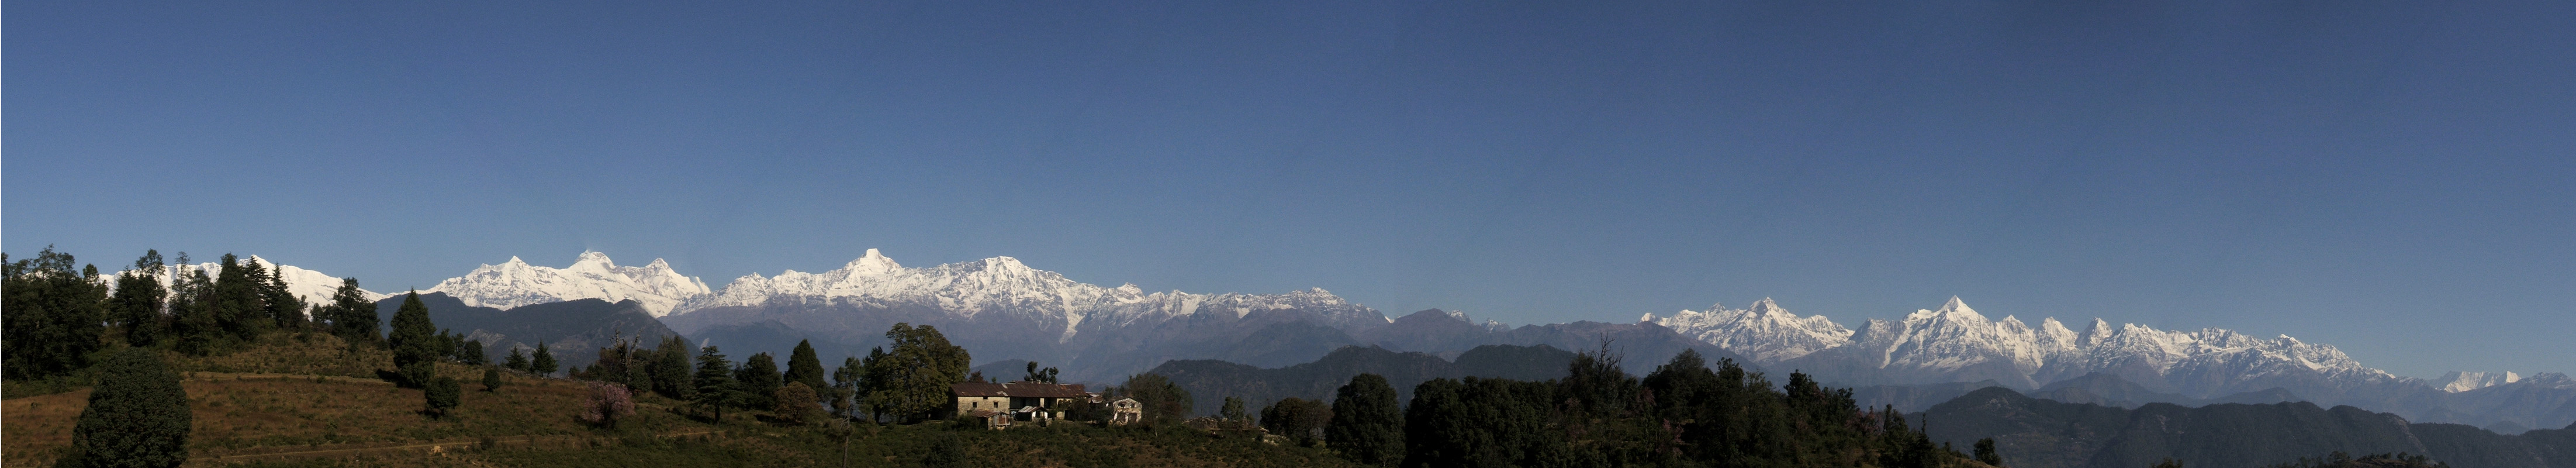 Panoramic view of the Himalayas, from Chaukori